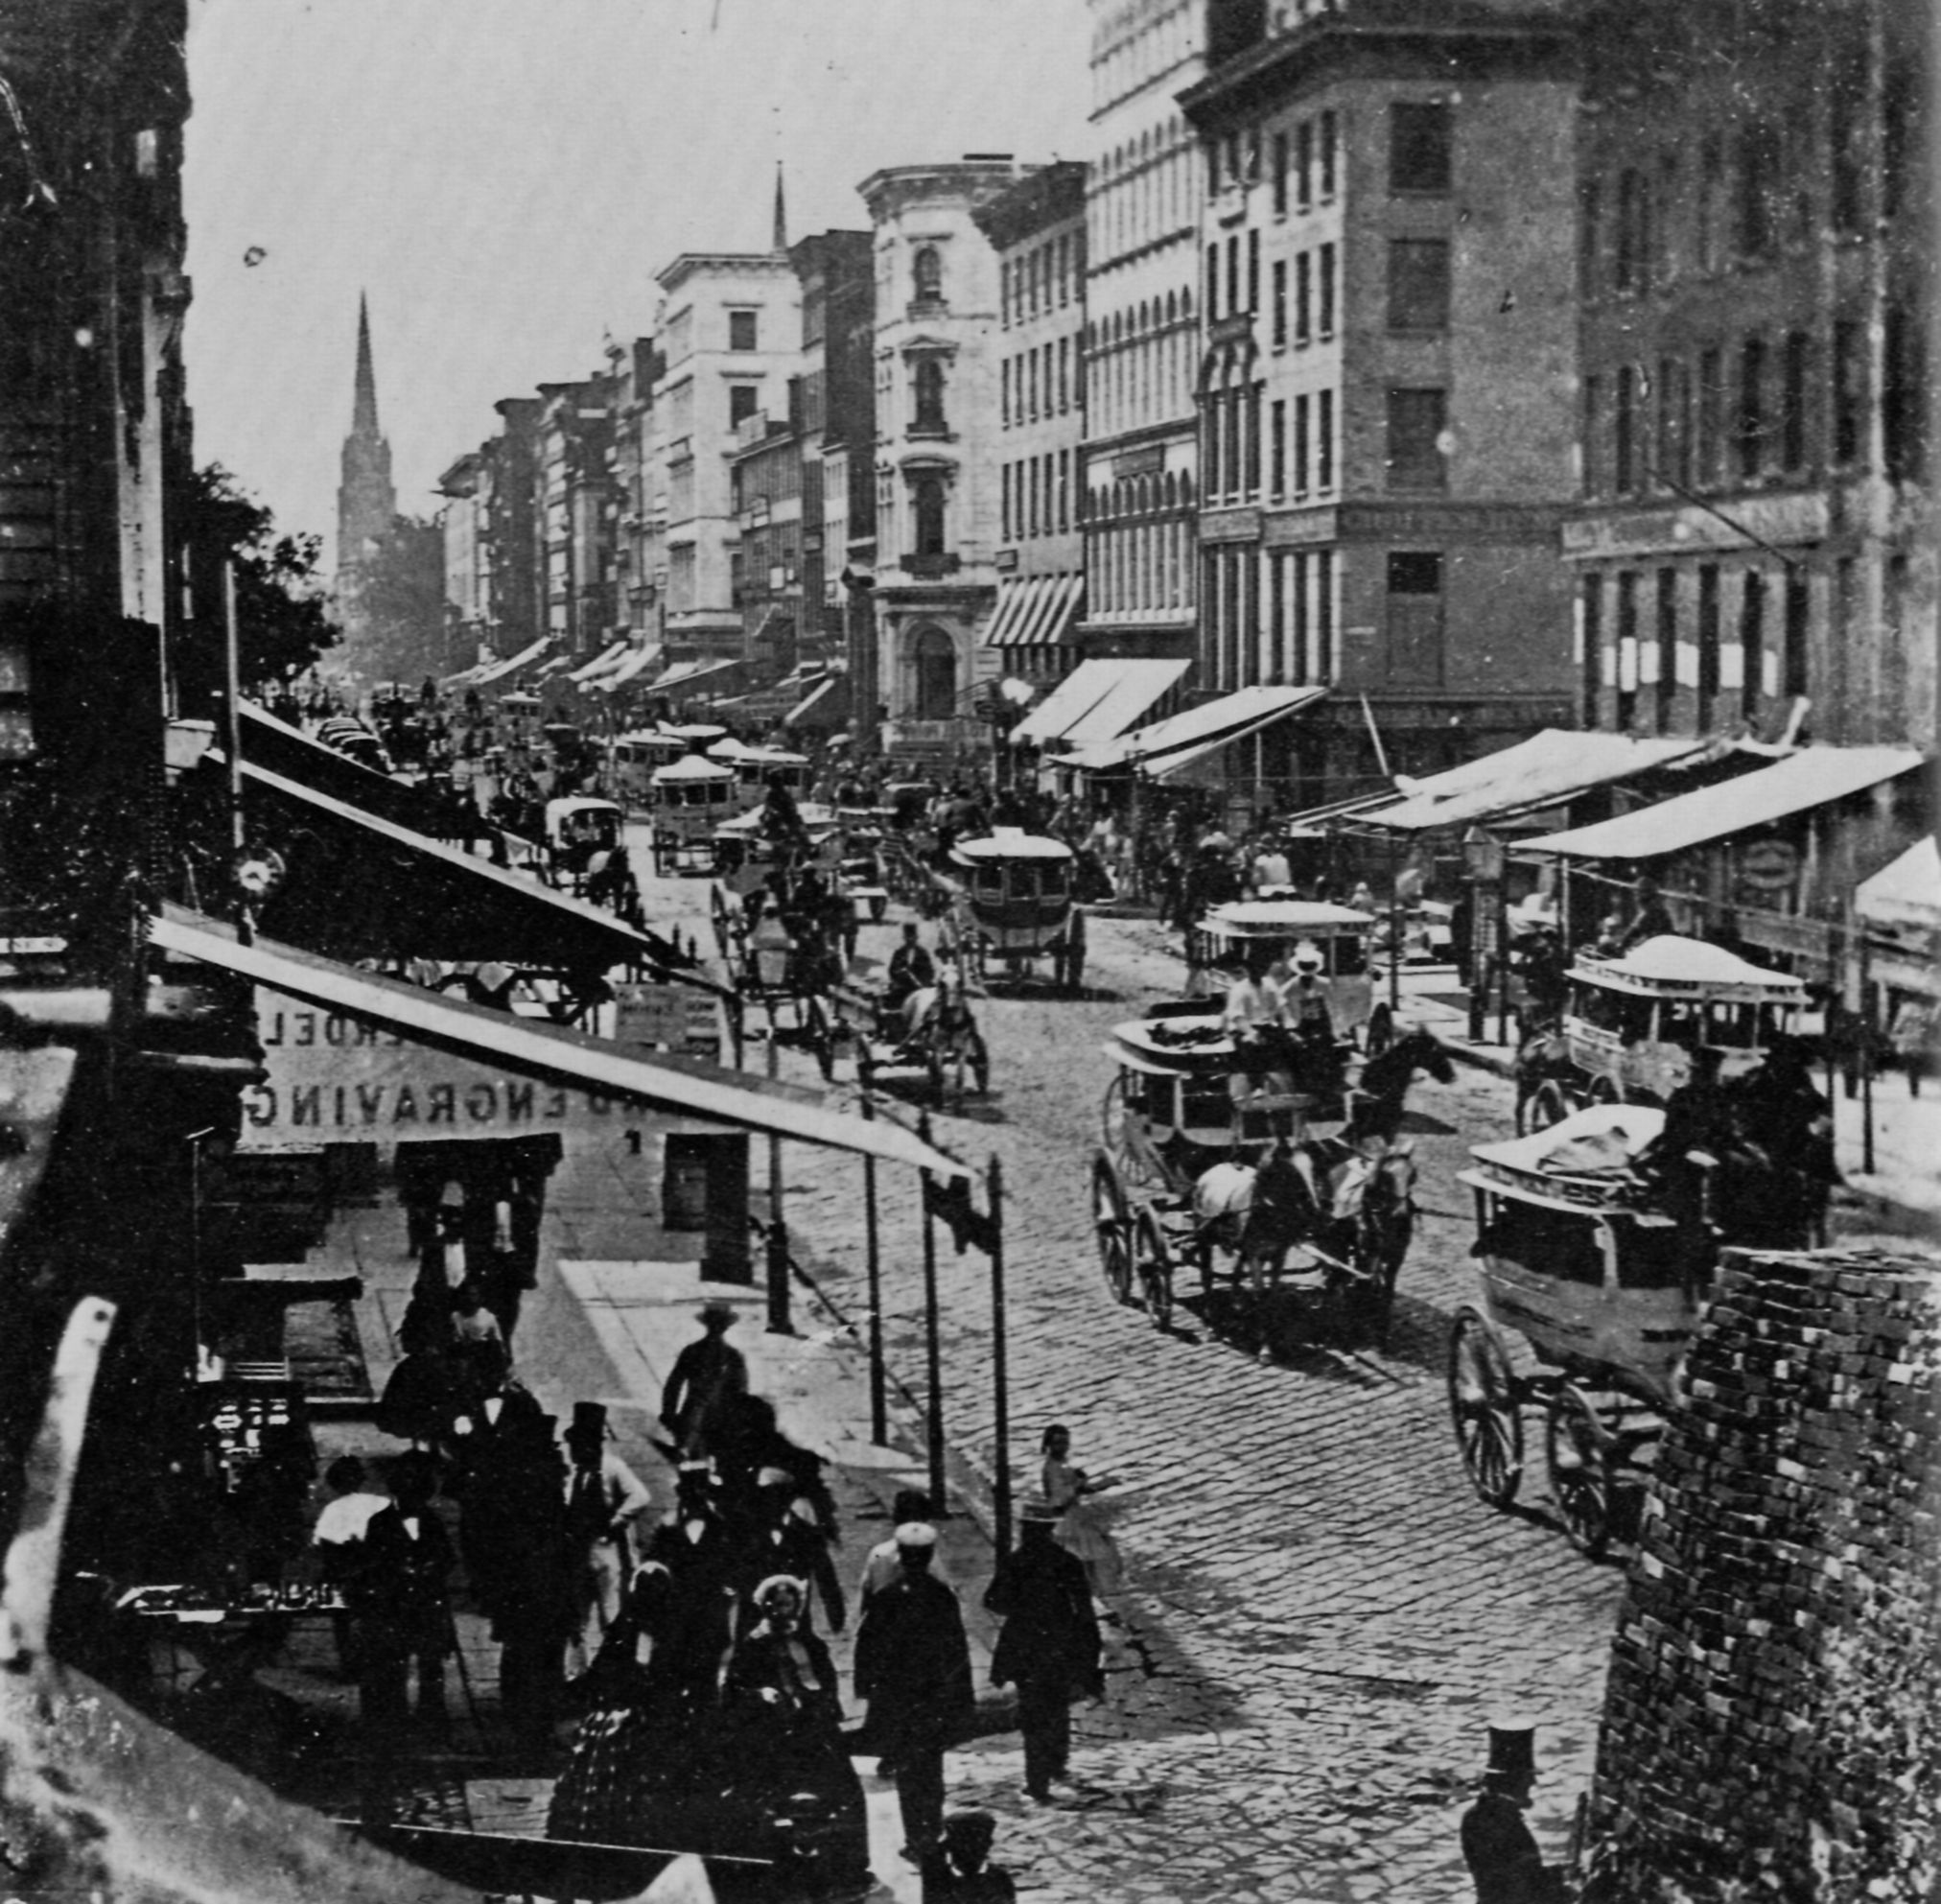 cities in the late 1800s